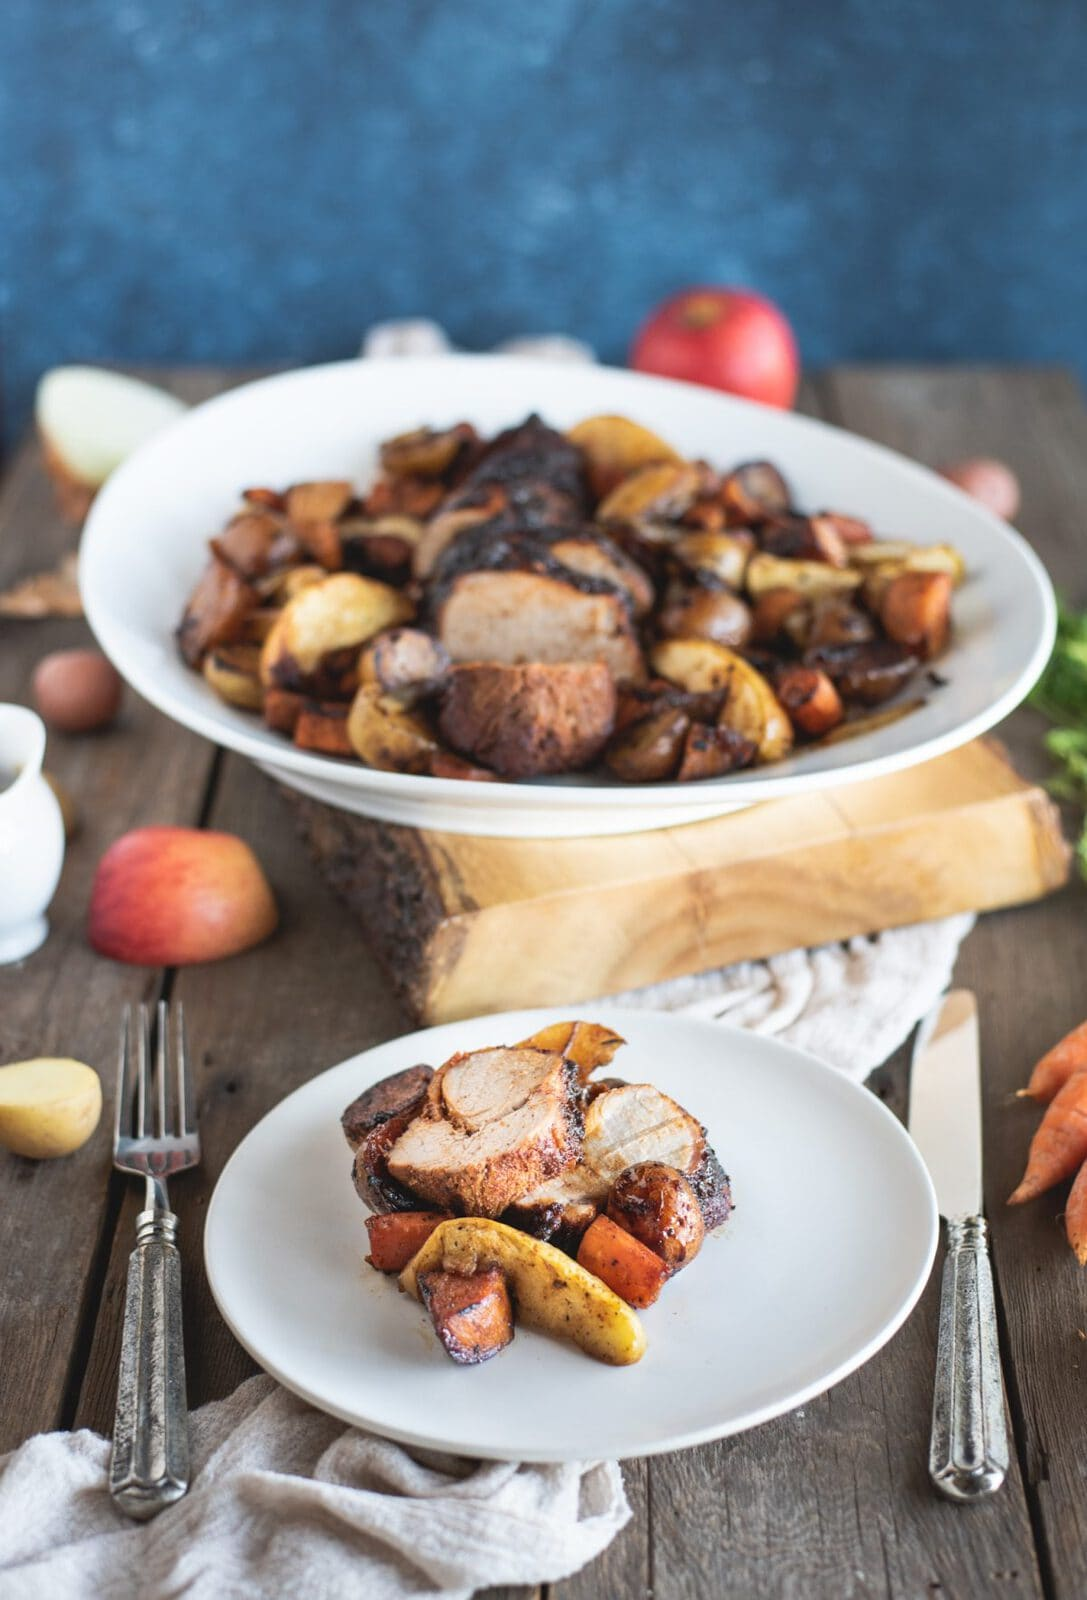 Picture of plate of Pork Tenderloin with Apples and Root Vegetables